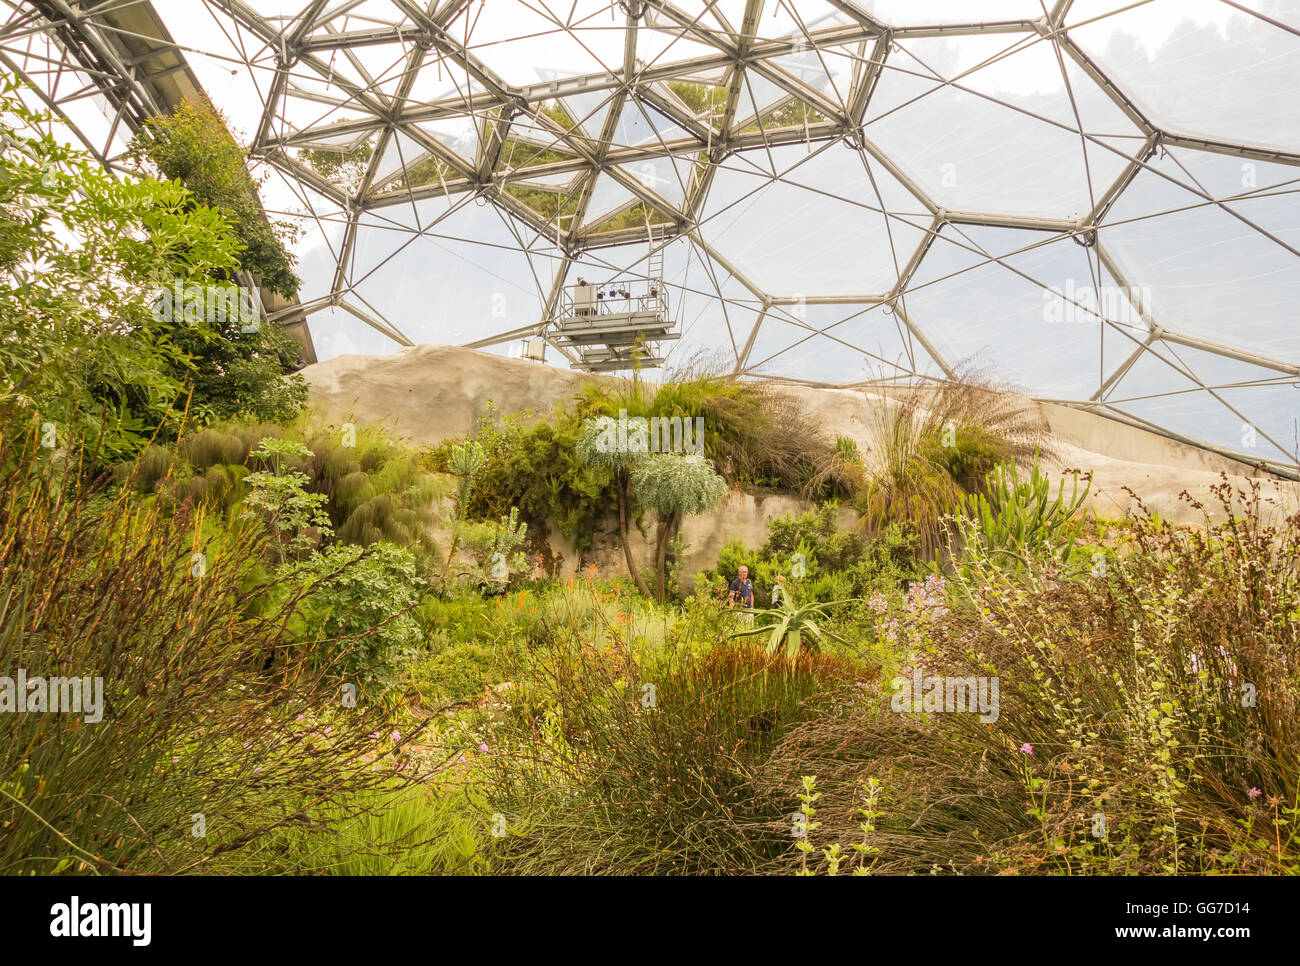 The Mediterranean biome of the Eden project in cornwall england - Stock Image